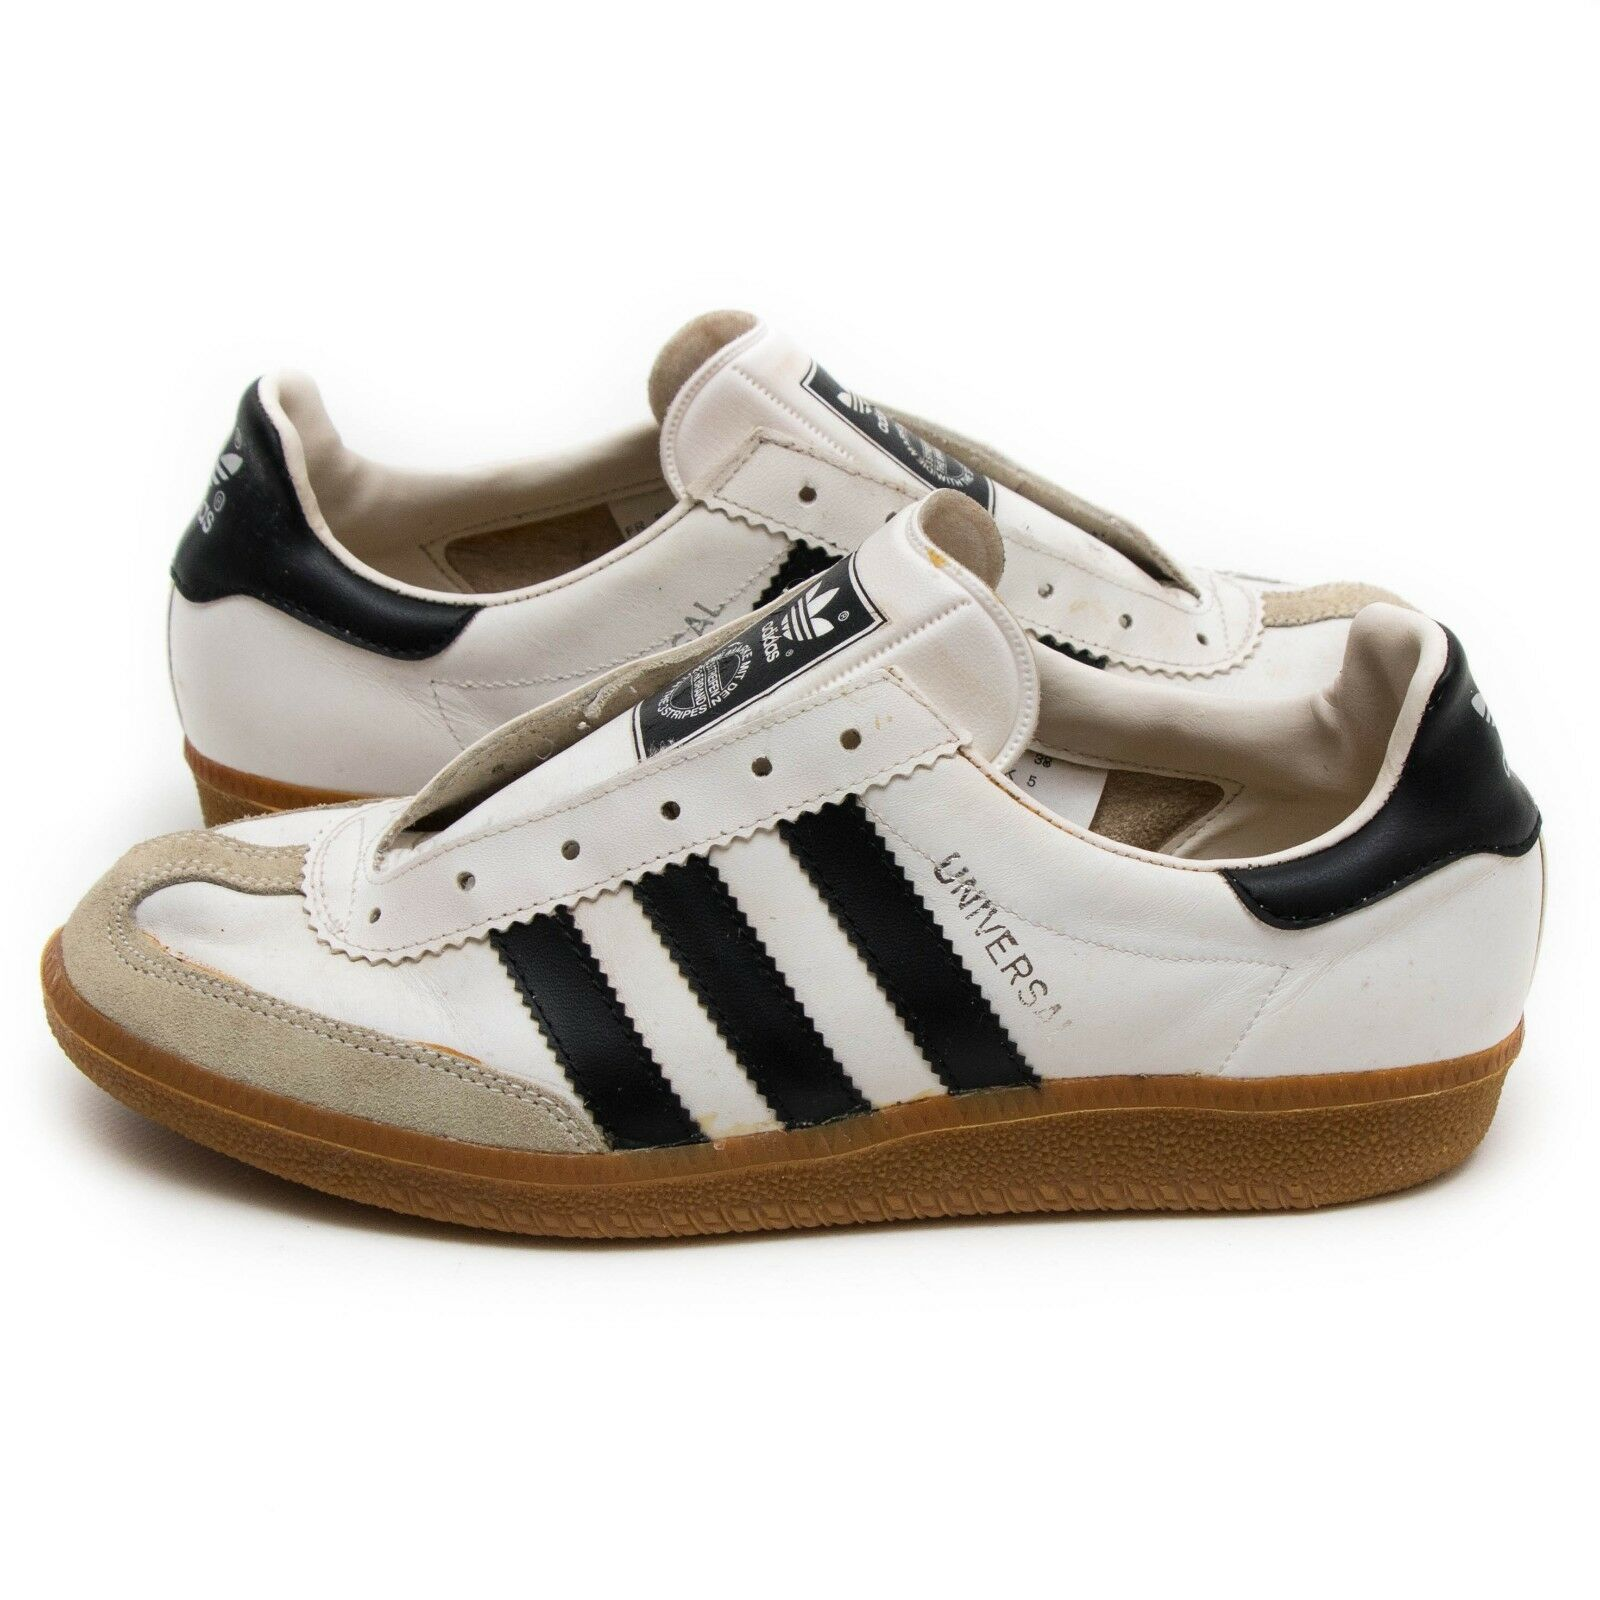 VINTAGE ADIDAS UNIVERSAL Sneakers Turnschuhe Trainers Gr 42